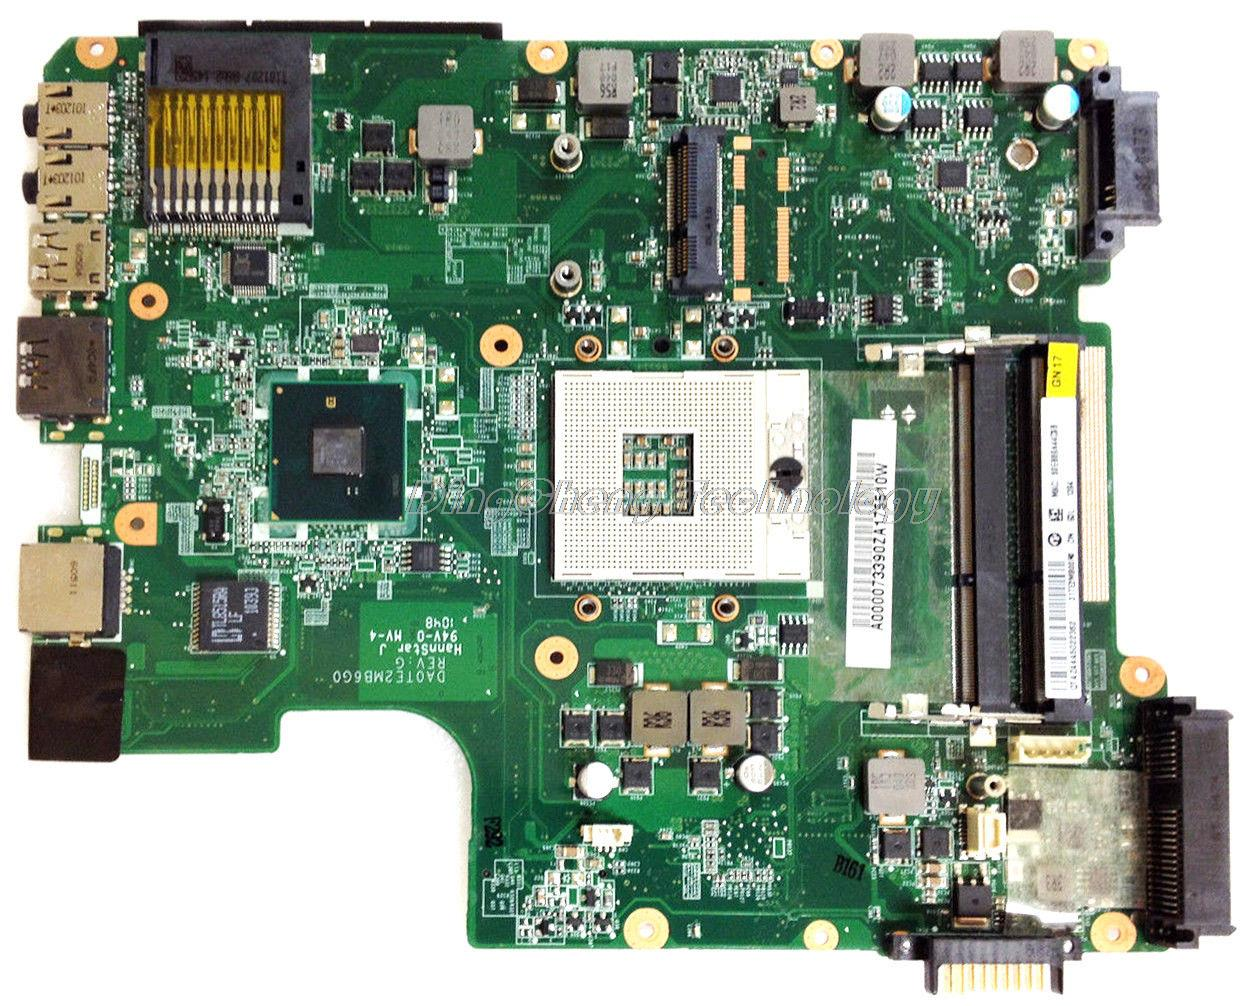 Laptop Motherboard For Toshiba Satellite L600 L640 L645 A000073390 DA0TE2MB6G0 integrated graphics cardLaptop Motherboard For Toshiba Satellite L600 L640 L645 A000073390 DA0TE2MB6G0 integrated graphics card